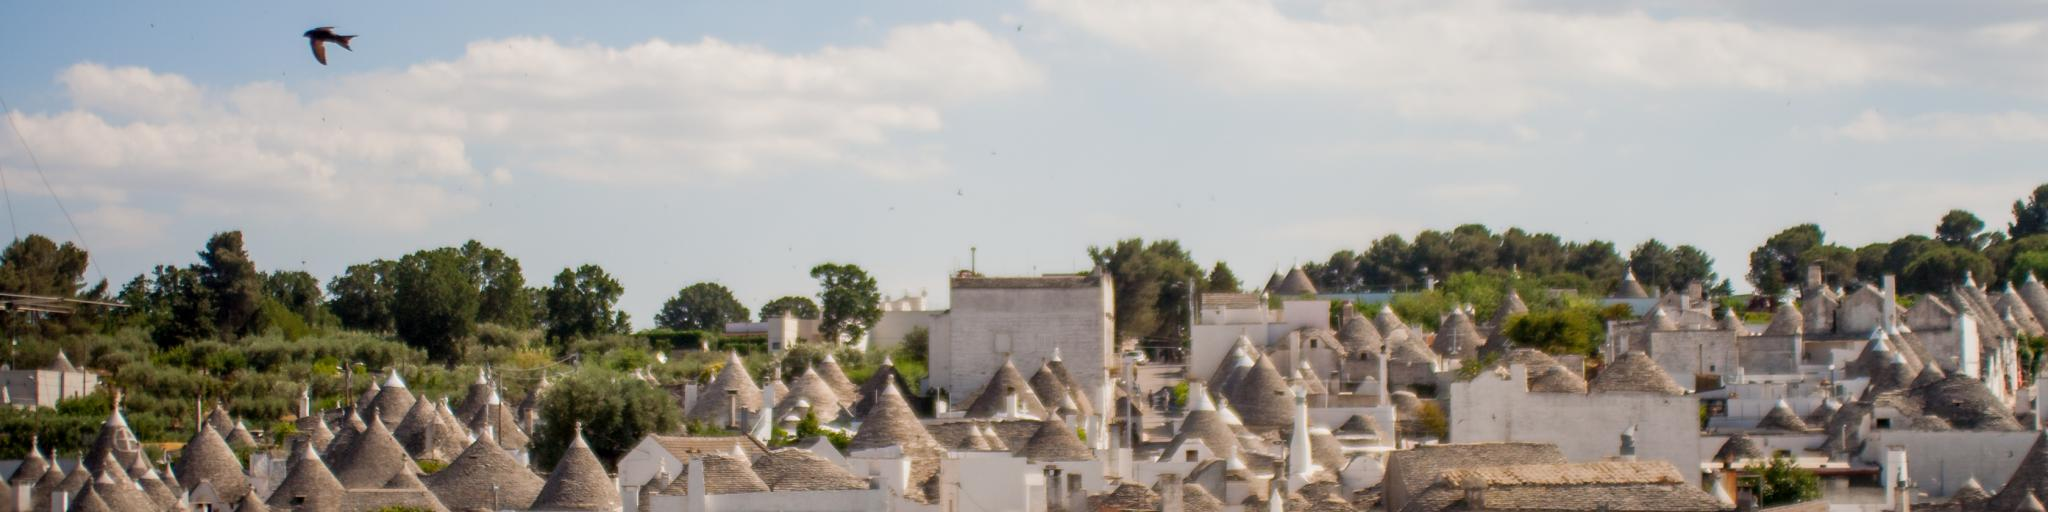 The roofs of the port city of Bari in Italy